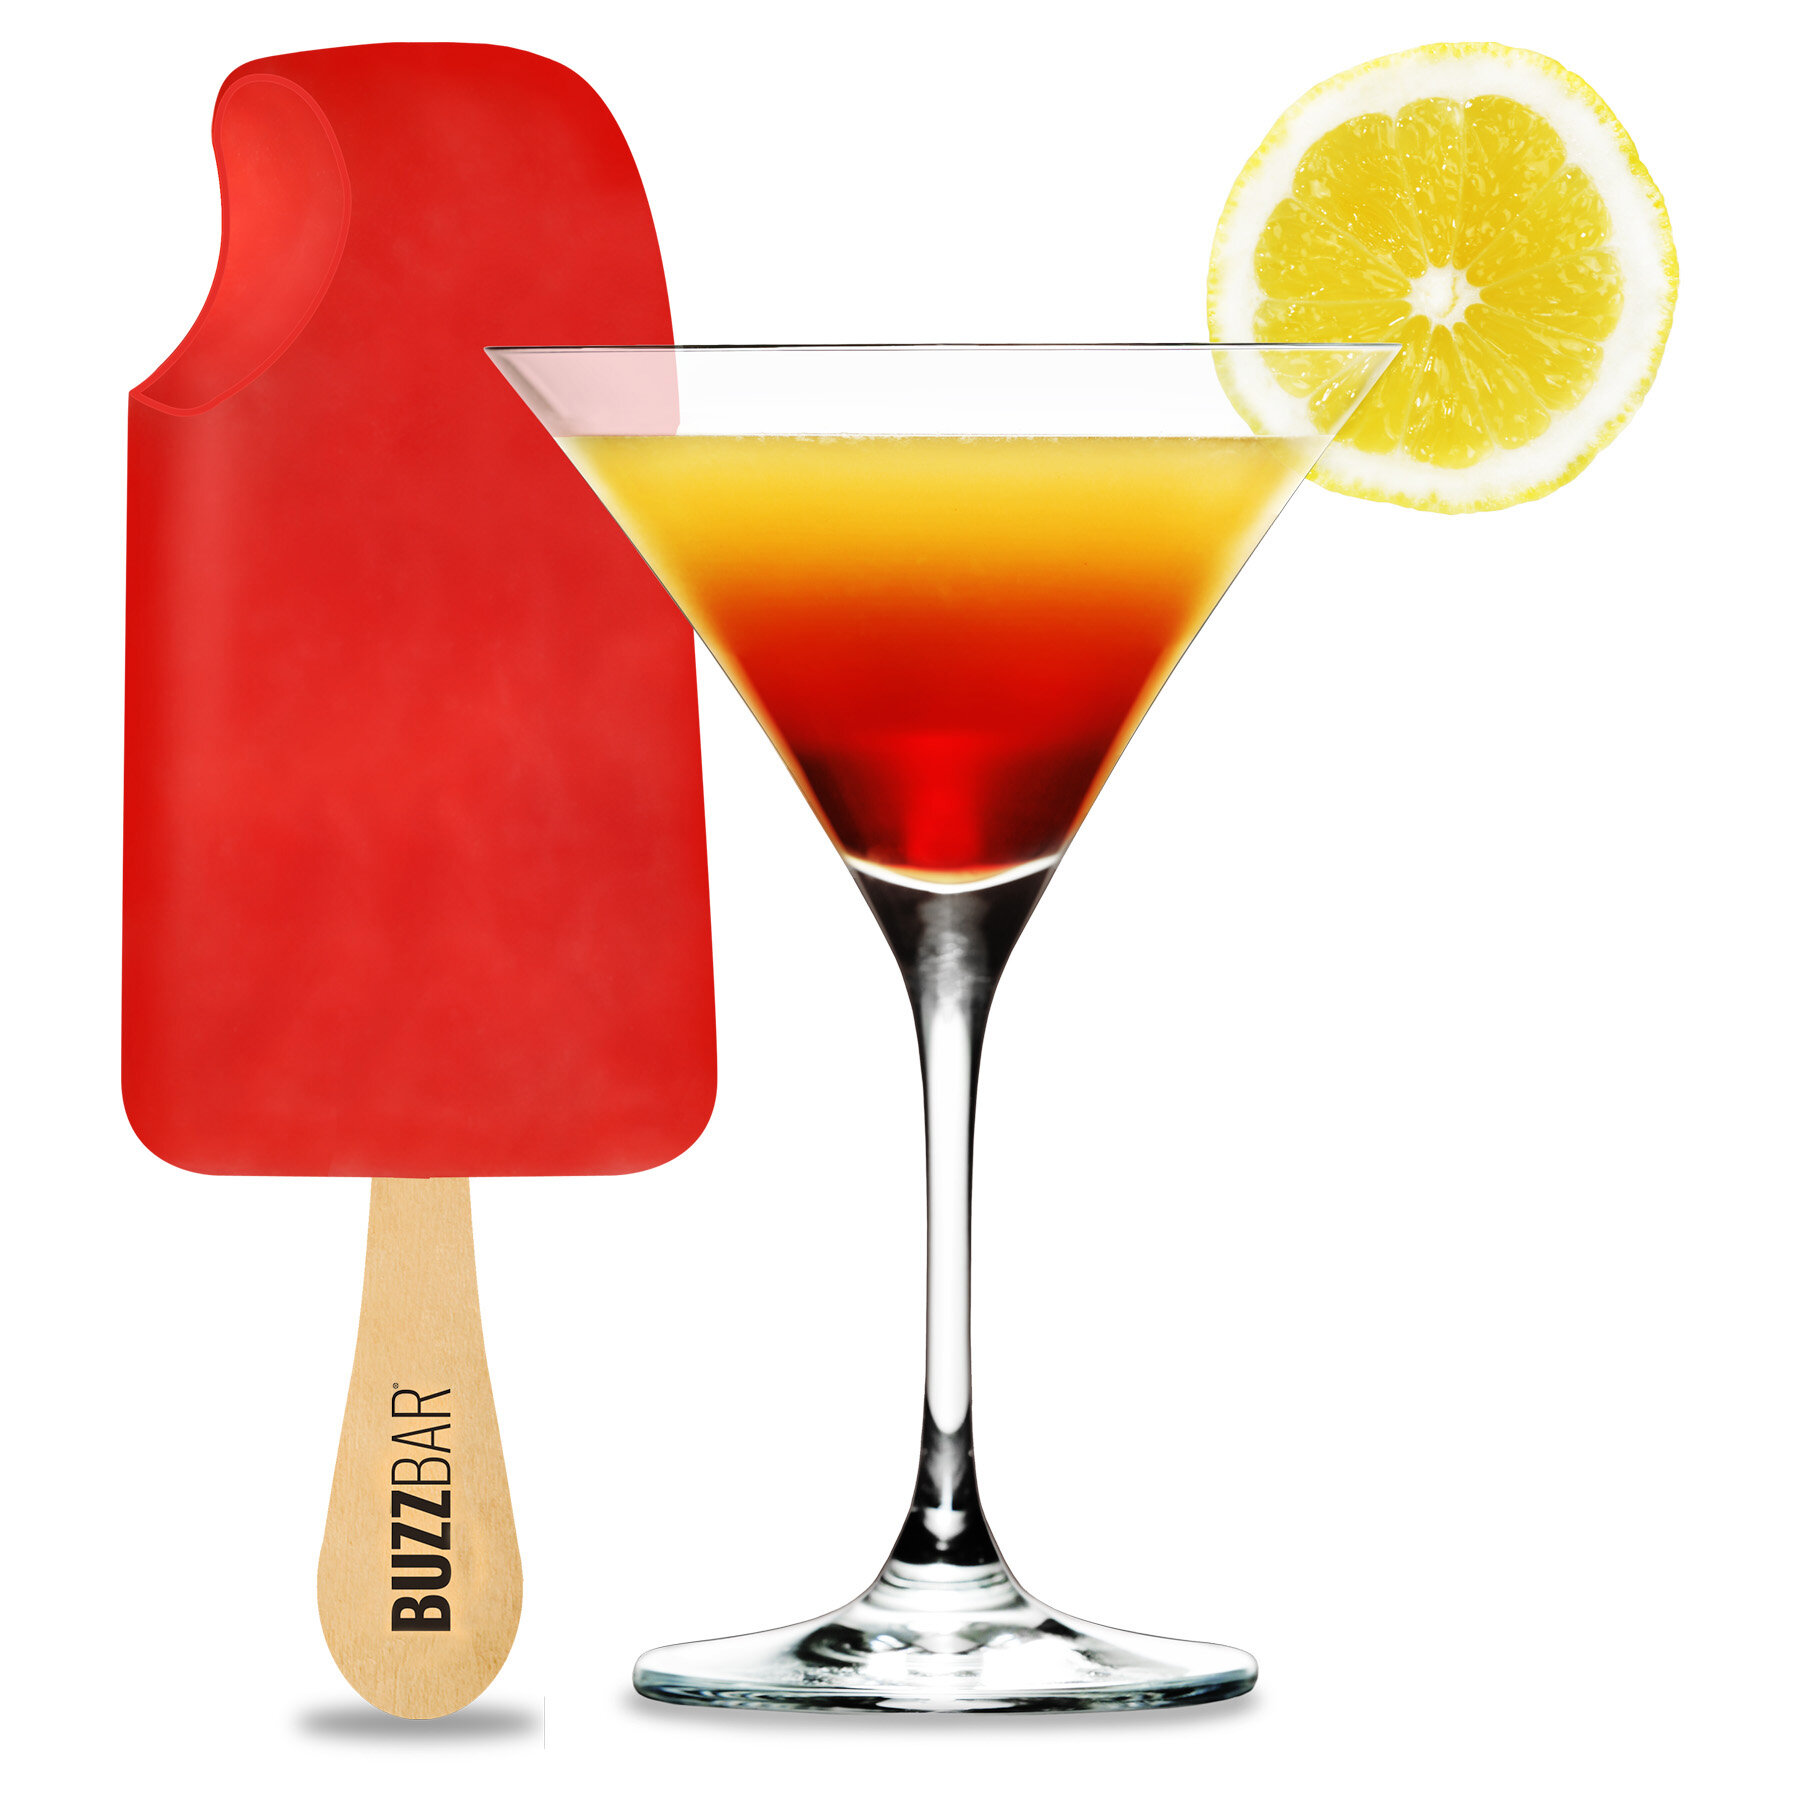 Citrus Berry Drop - Tantalizing fresh lemons fused together with ripe raspberries and smooth vodka, chilled into a refreshing sorbet. A glamorous and sophisticated Cosmopolitan on a stick.